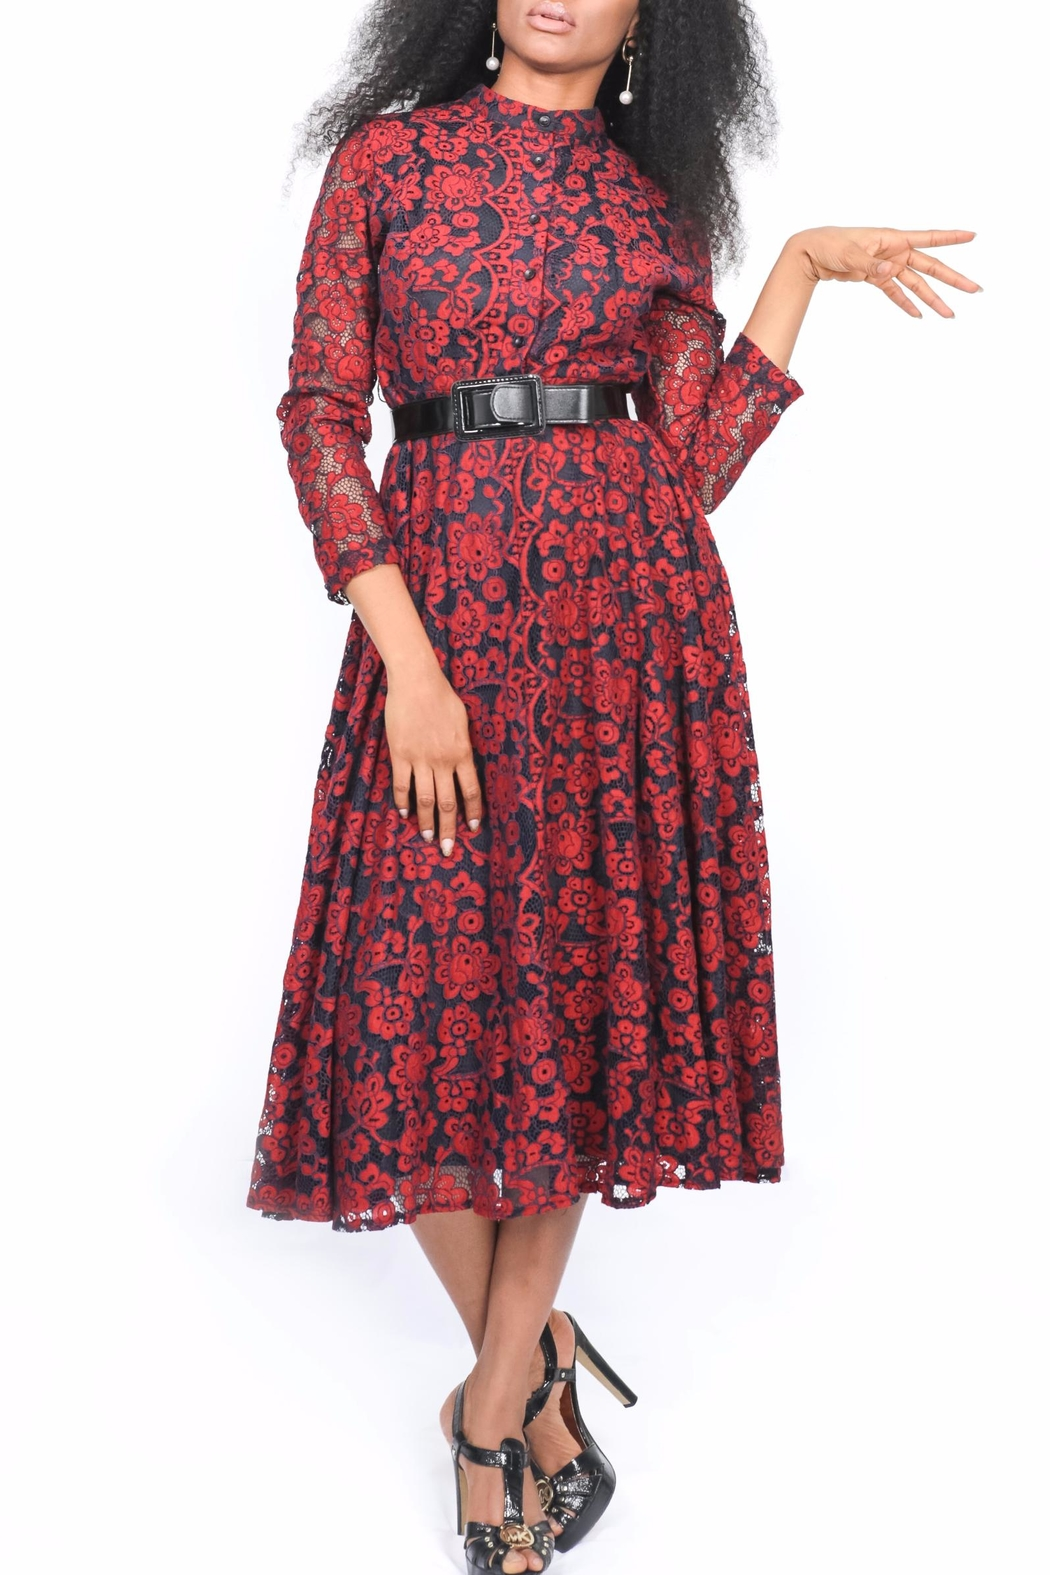 MODChic Couture Red Lace Dress - Main Image